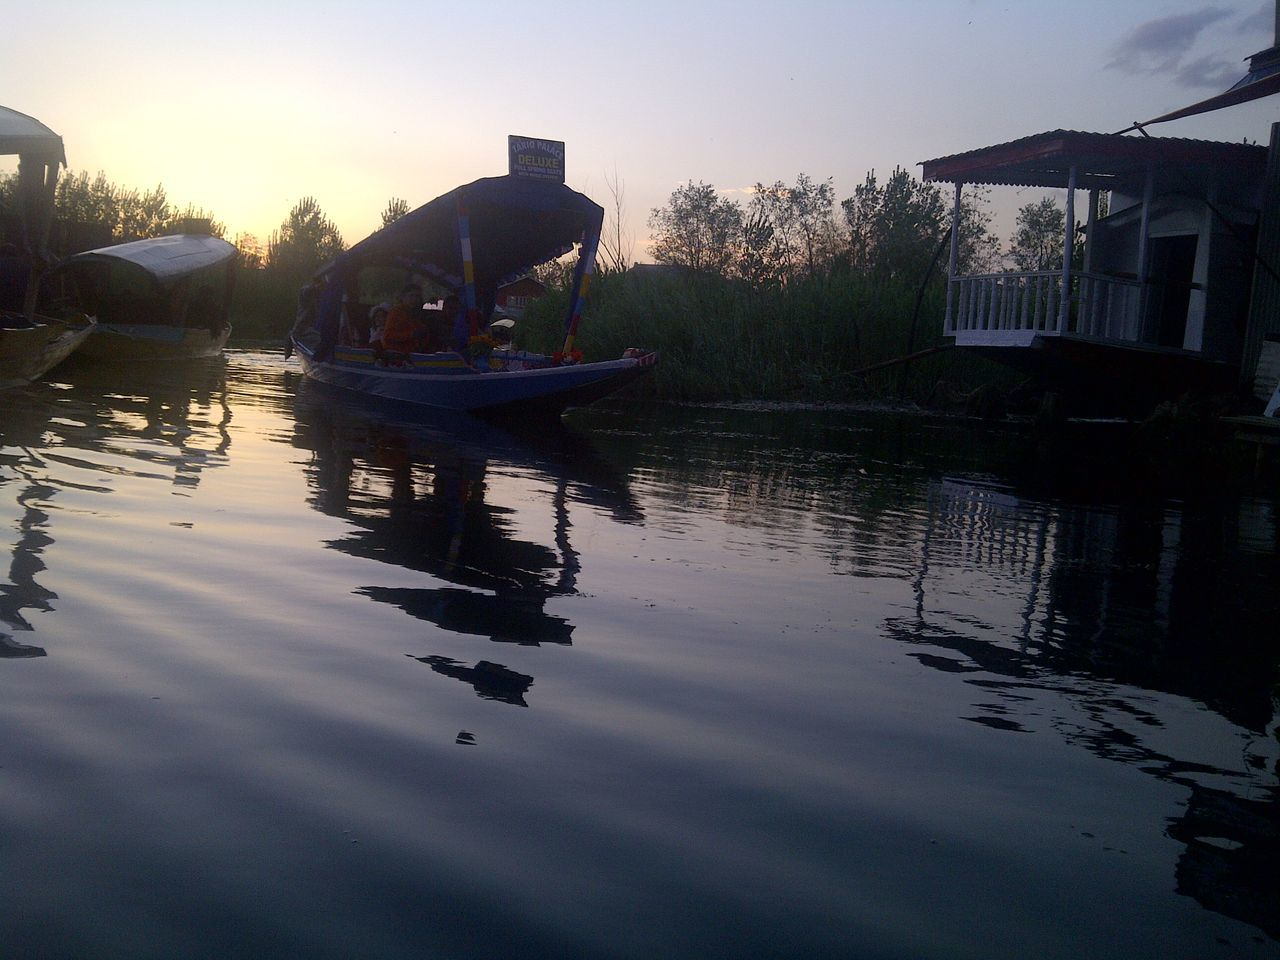 Beauty In Nature Day Kashmir Kashmirdiaries Nature Outdoors Reflection Rippled Scenics Sky Srinagar  Srinagar Kashmir Tranquil Scene Tranquility Water The Culture Of The Holidays